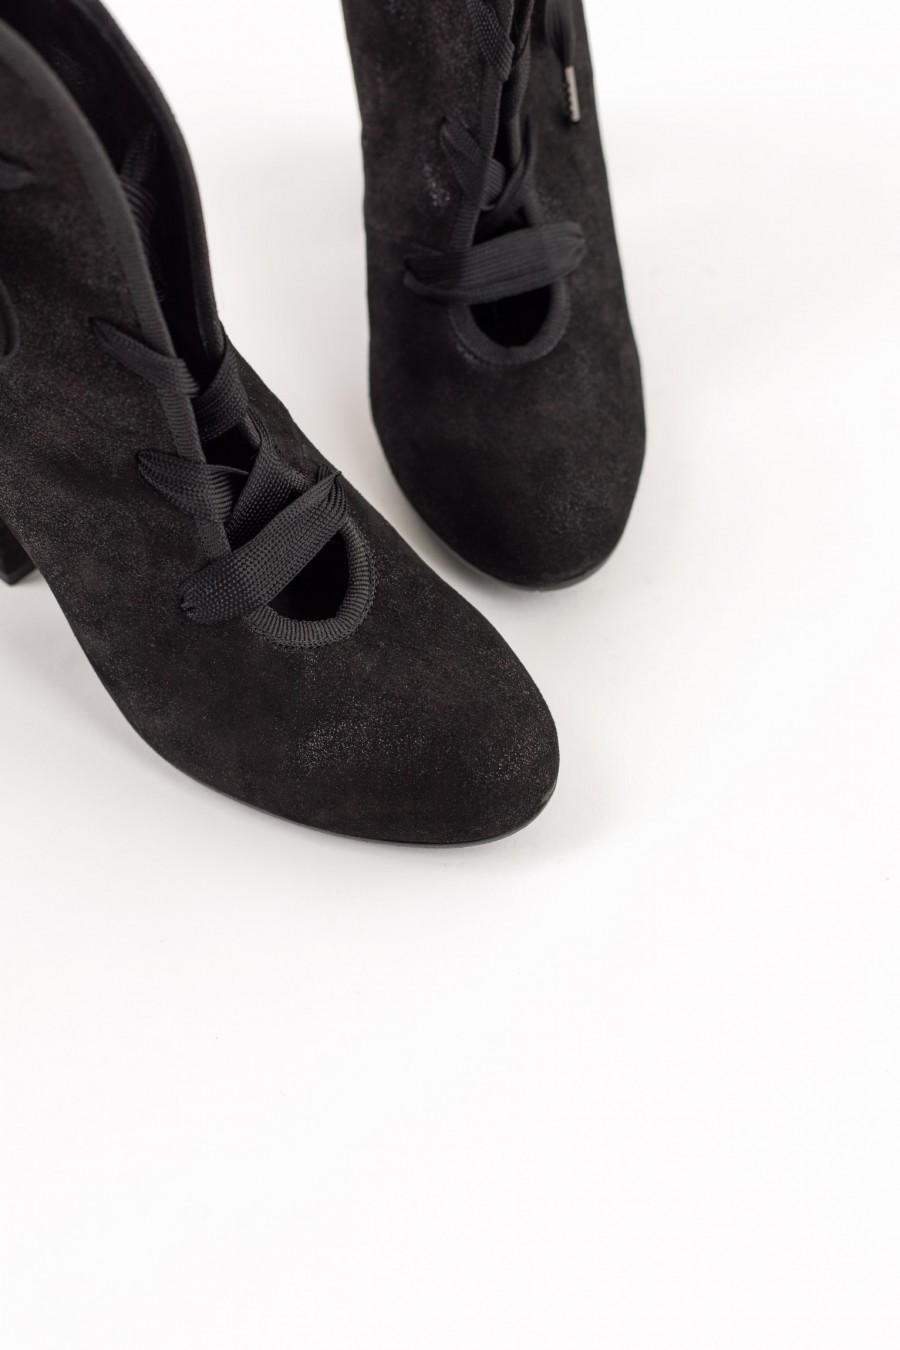 Rounded toe victorian style ankle boots